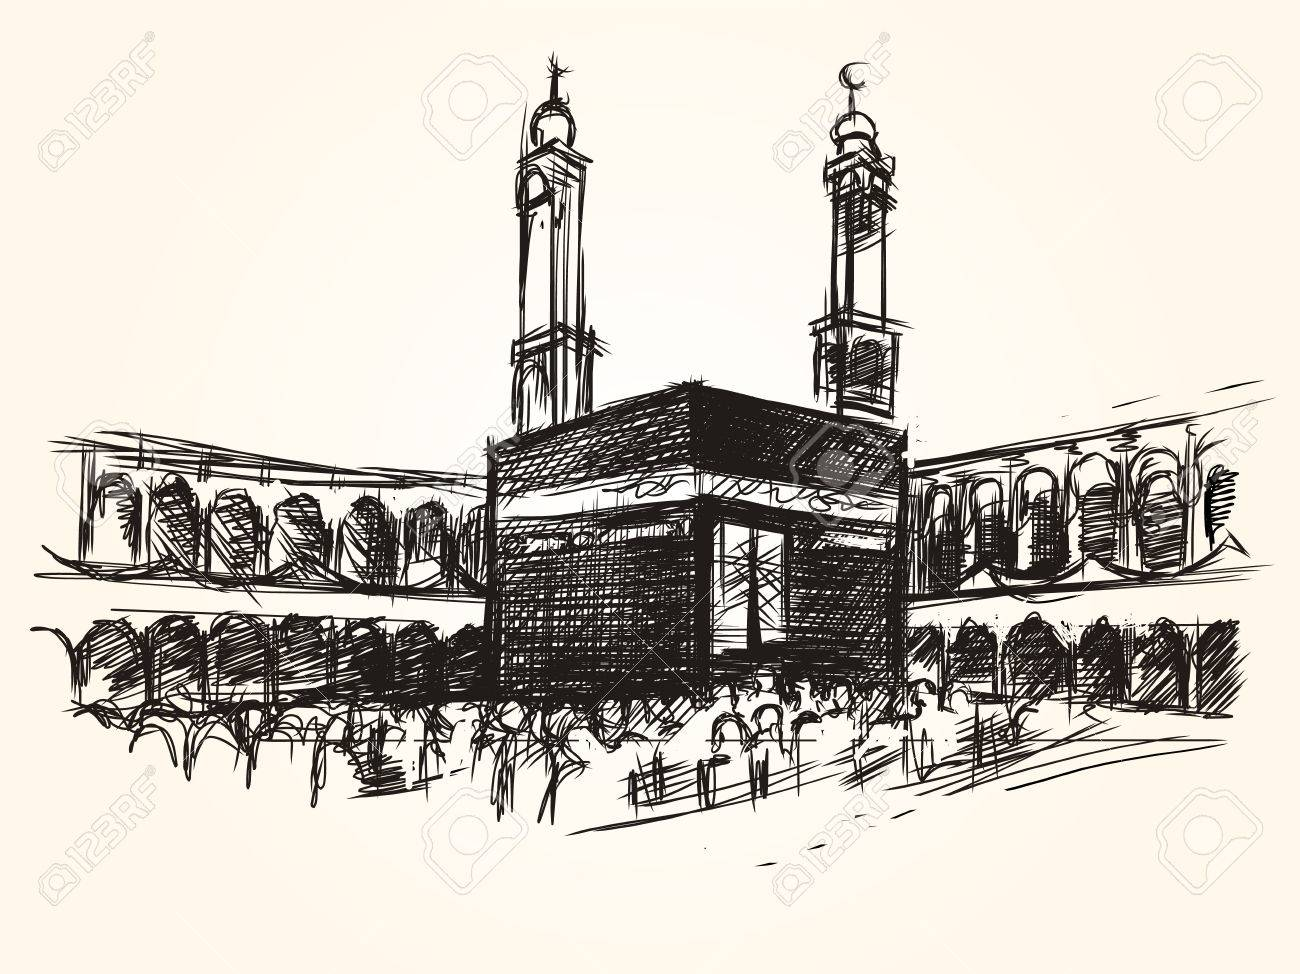 Kaaba holy symbolic building in islam vector sketch drawing pilgrimage hajj - 74913810